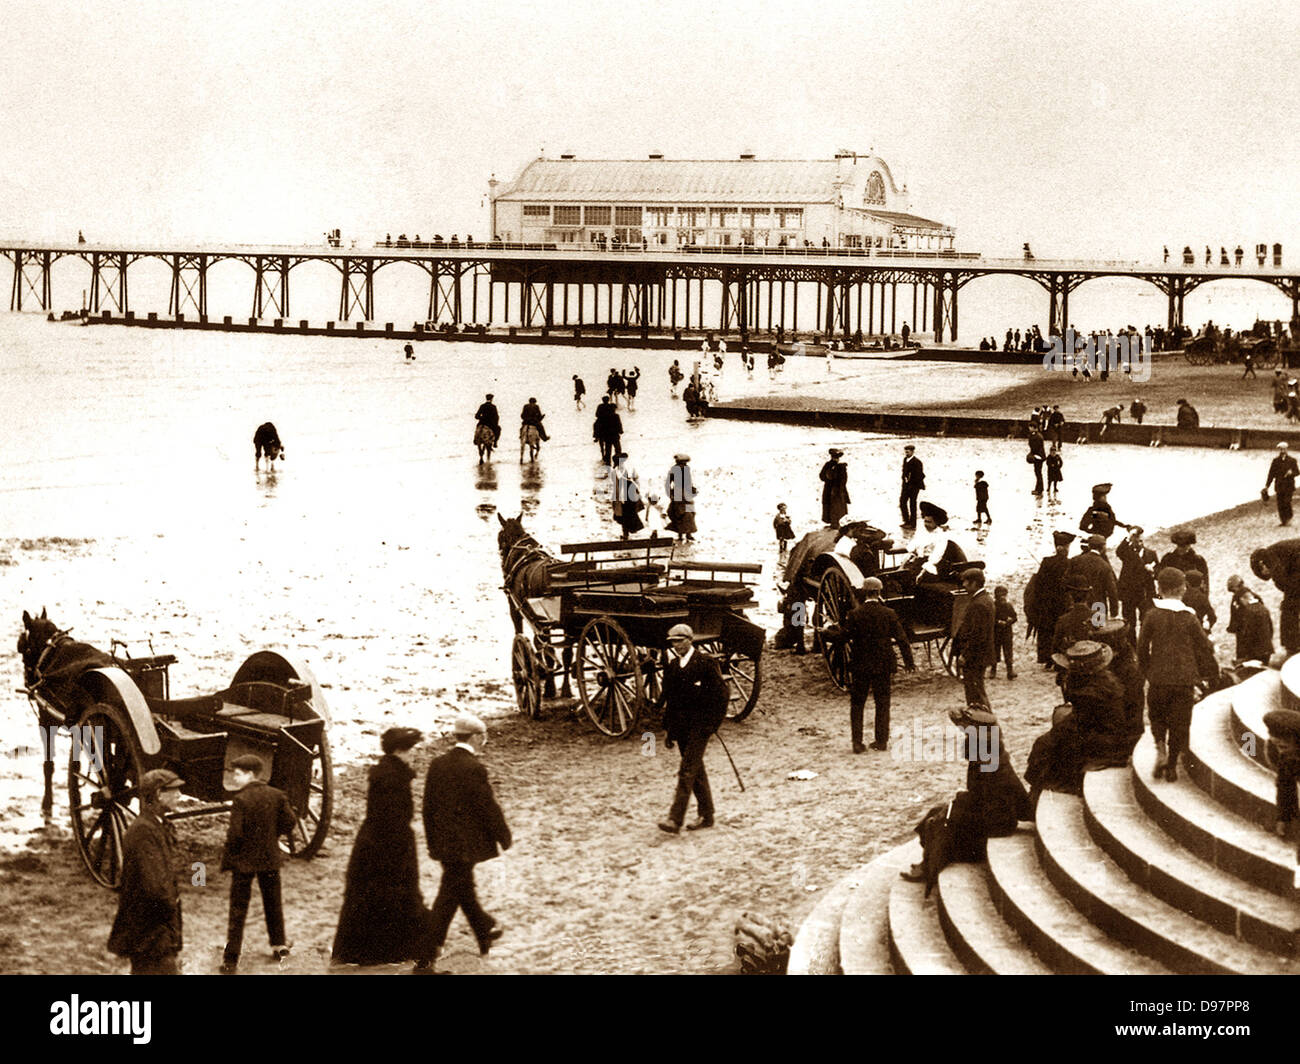 Cleethorpes Pier and Beach early 1900s - Stock Image